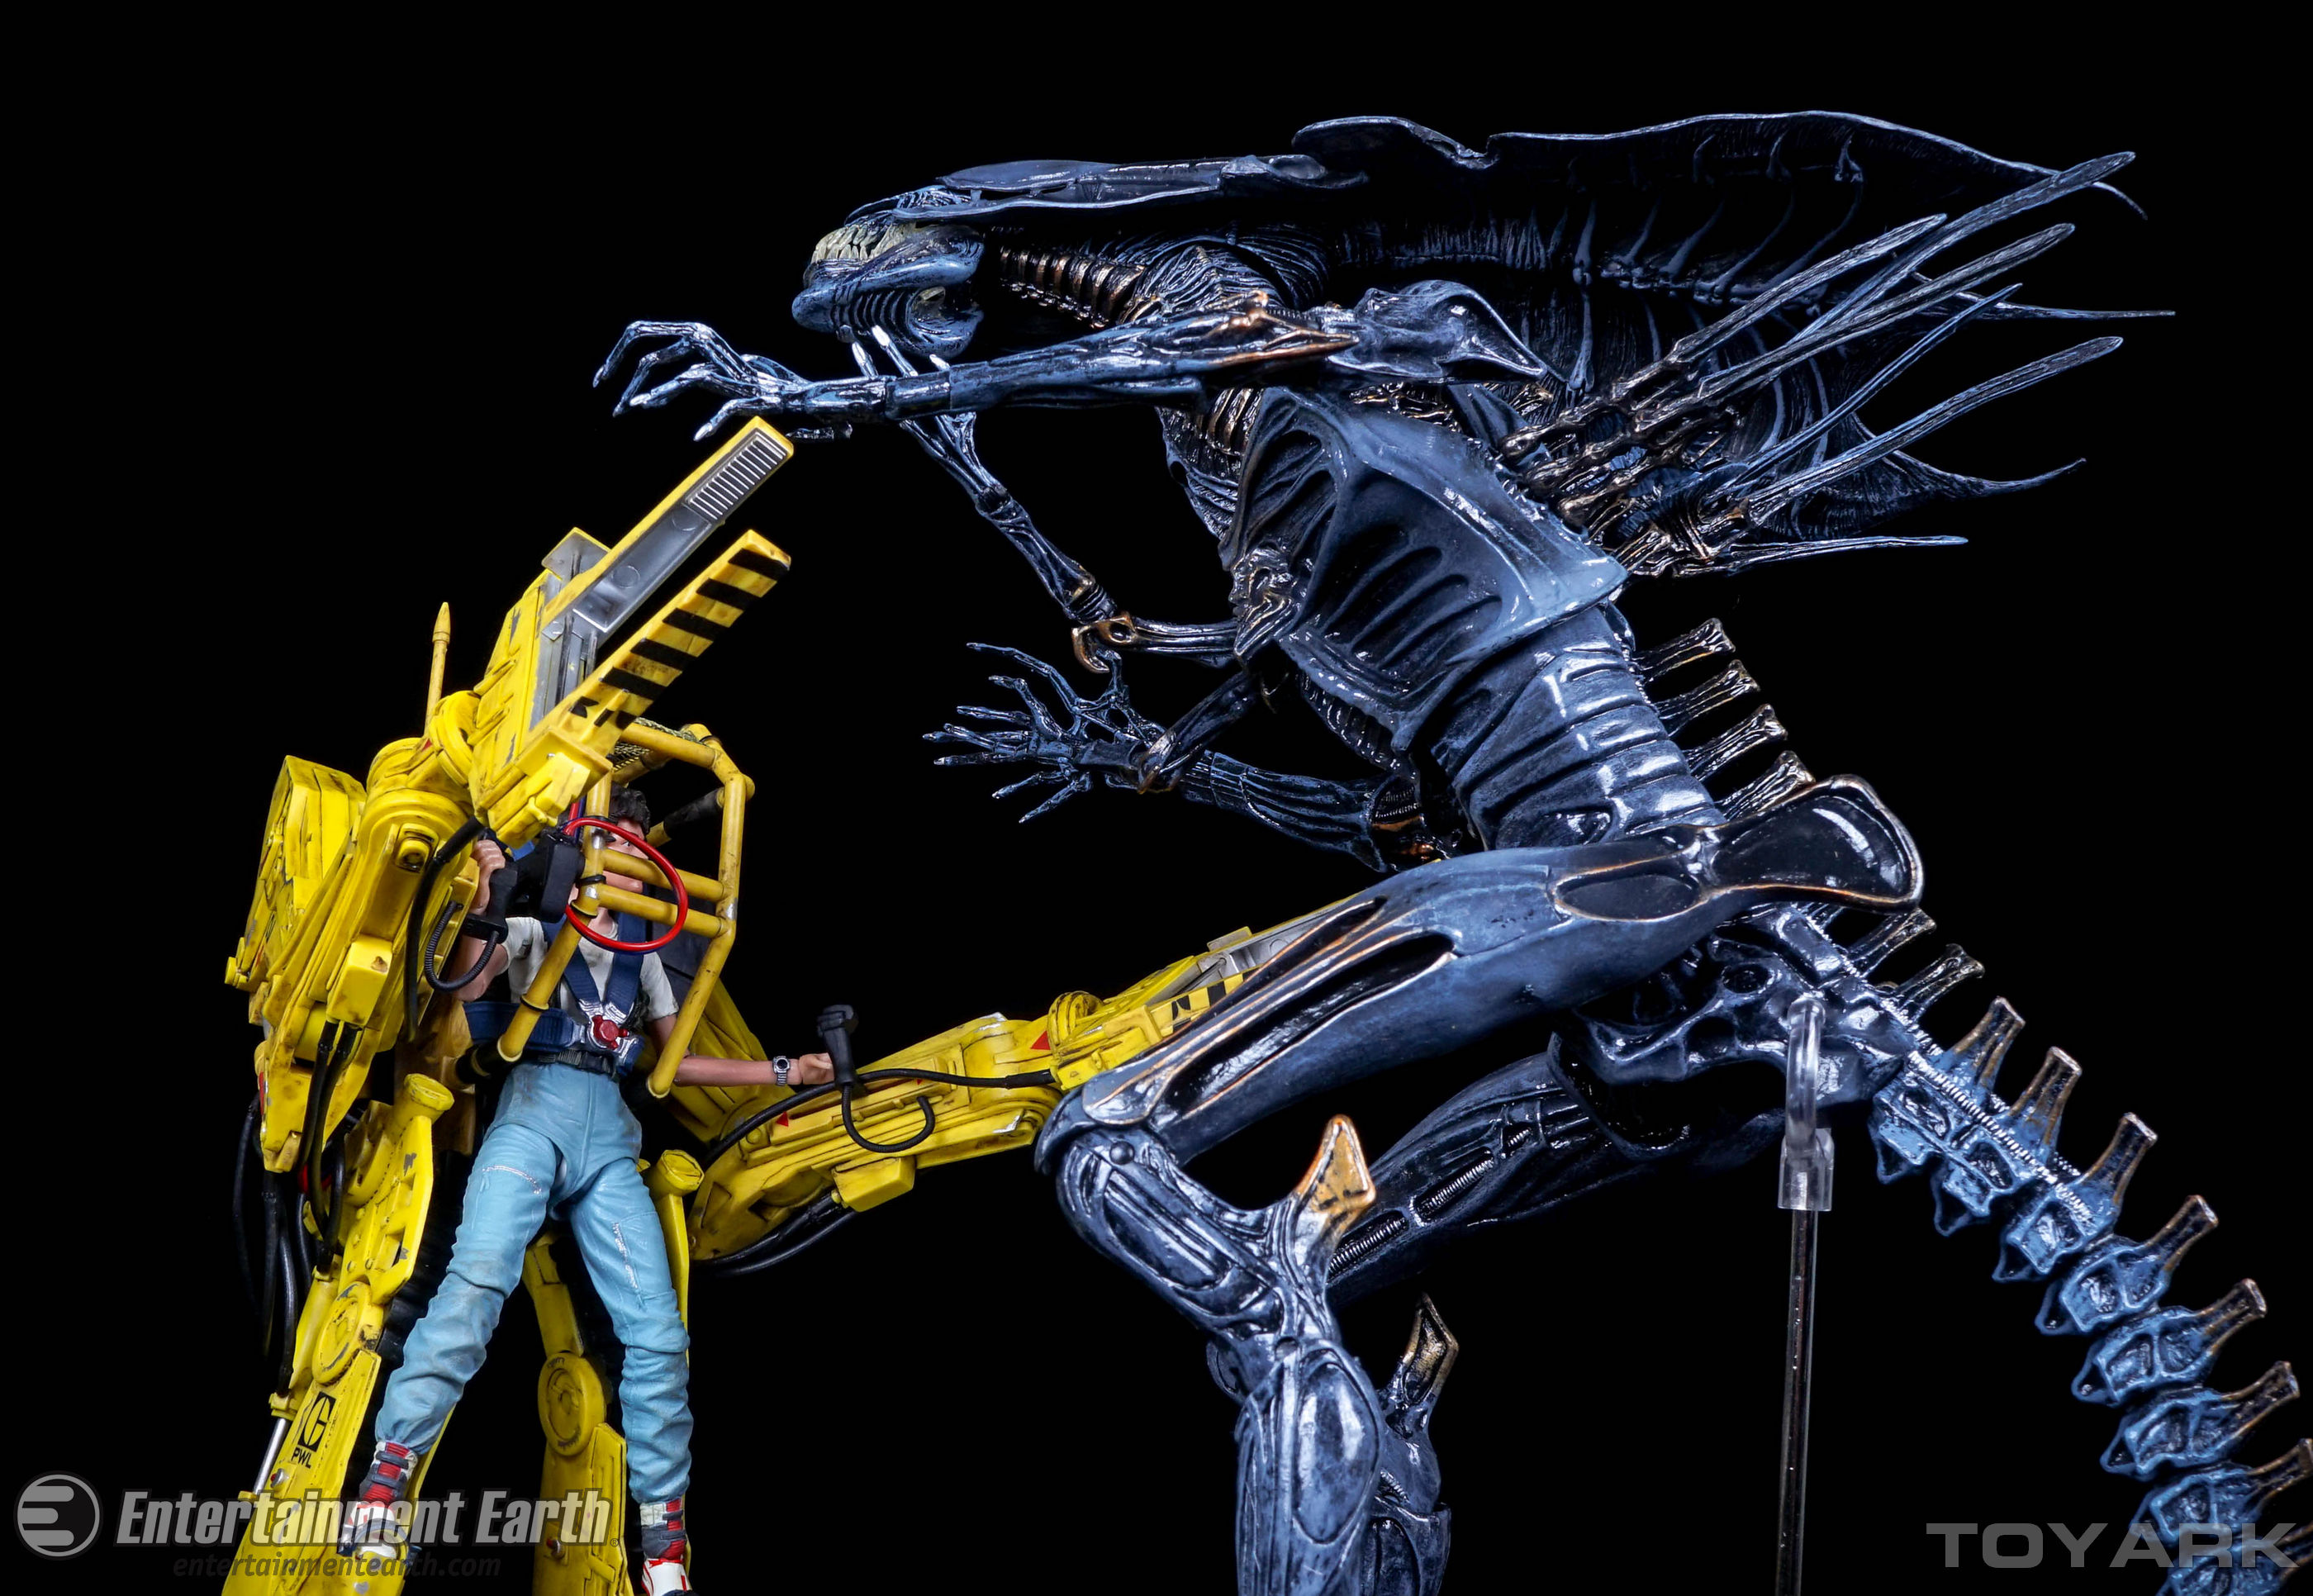 http://news.toyark.com/wp-content/uploads/sites/4/2015/10/NECA-Aliens-Power-Loader-056.jpg